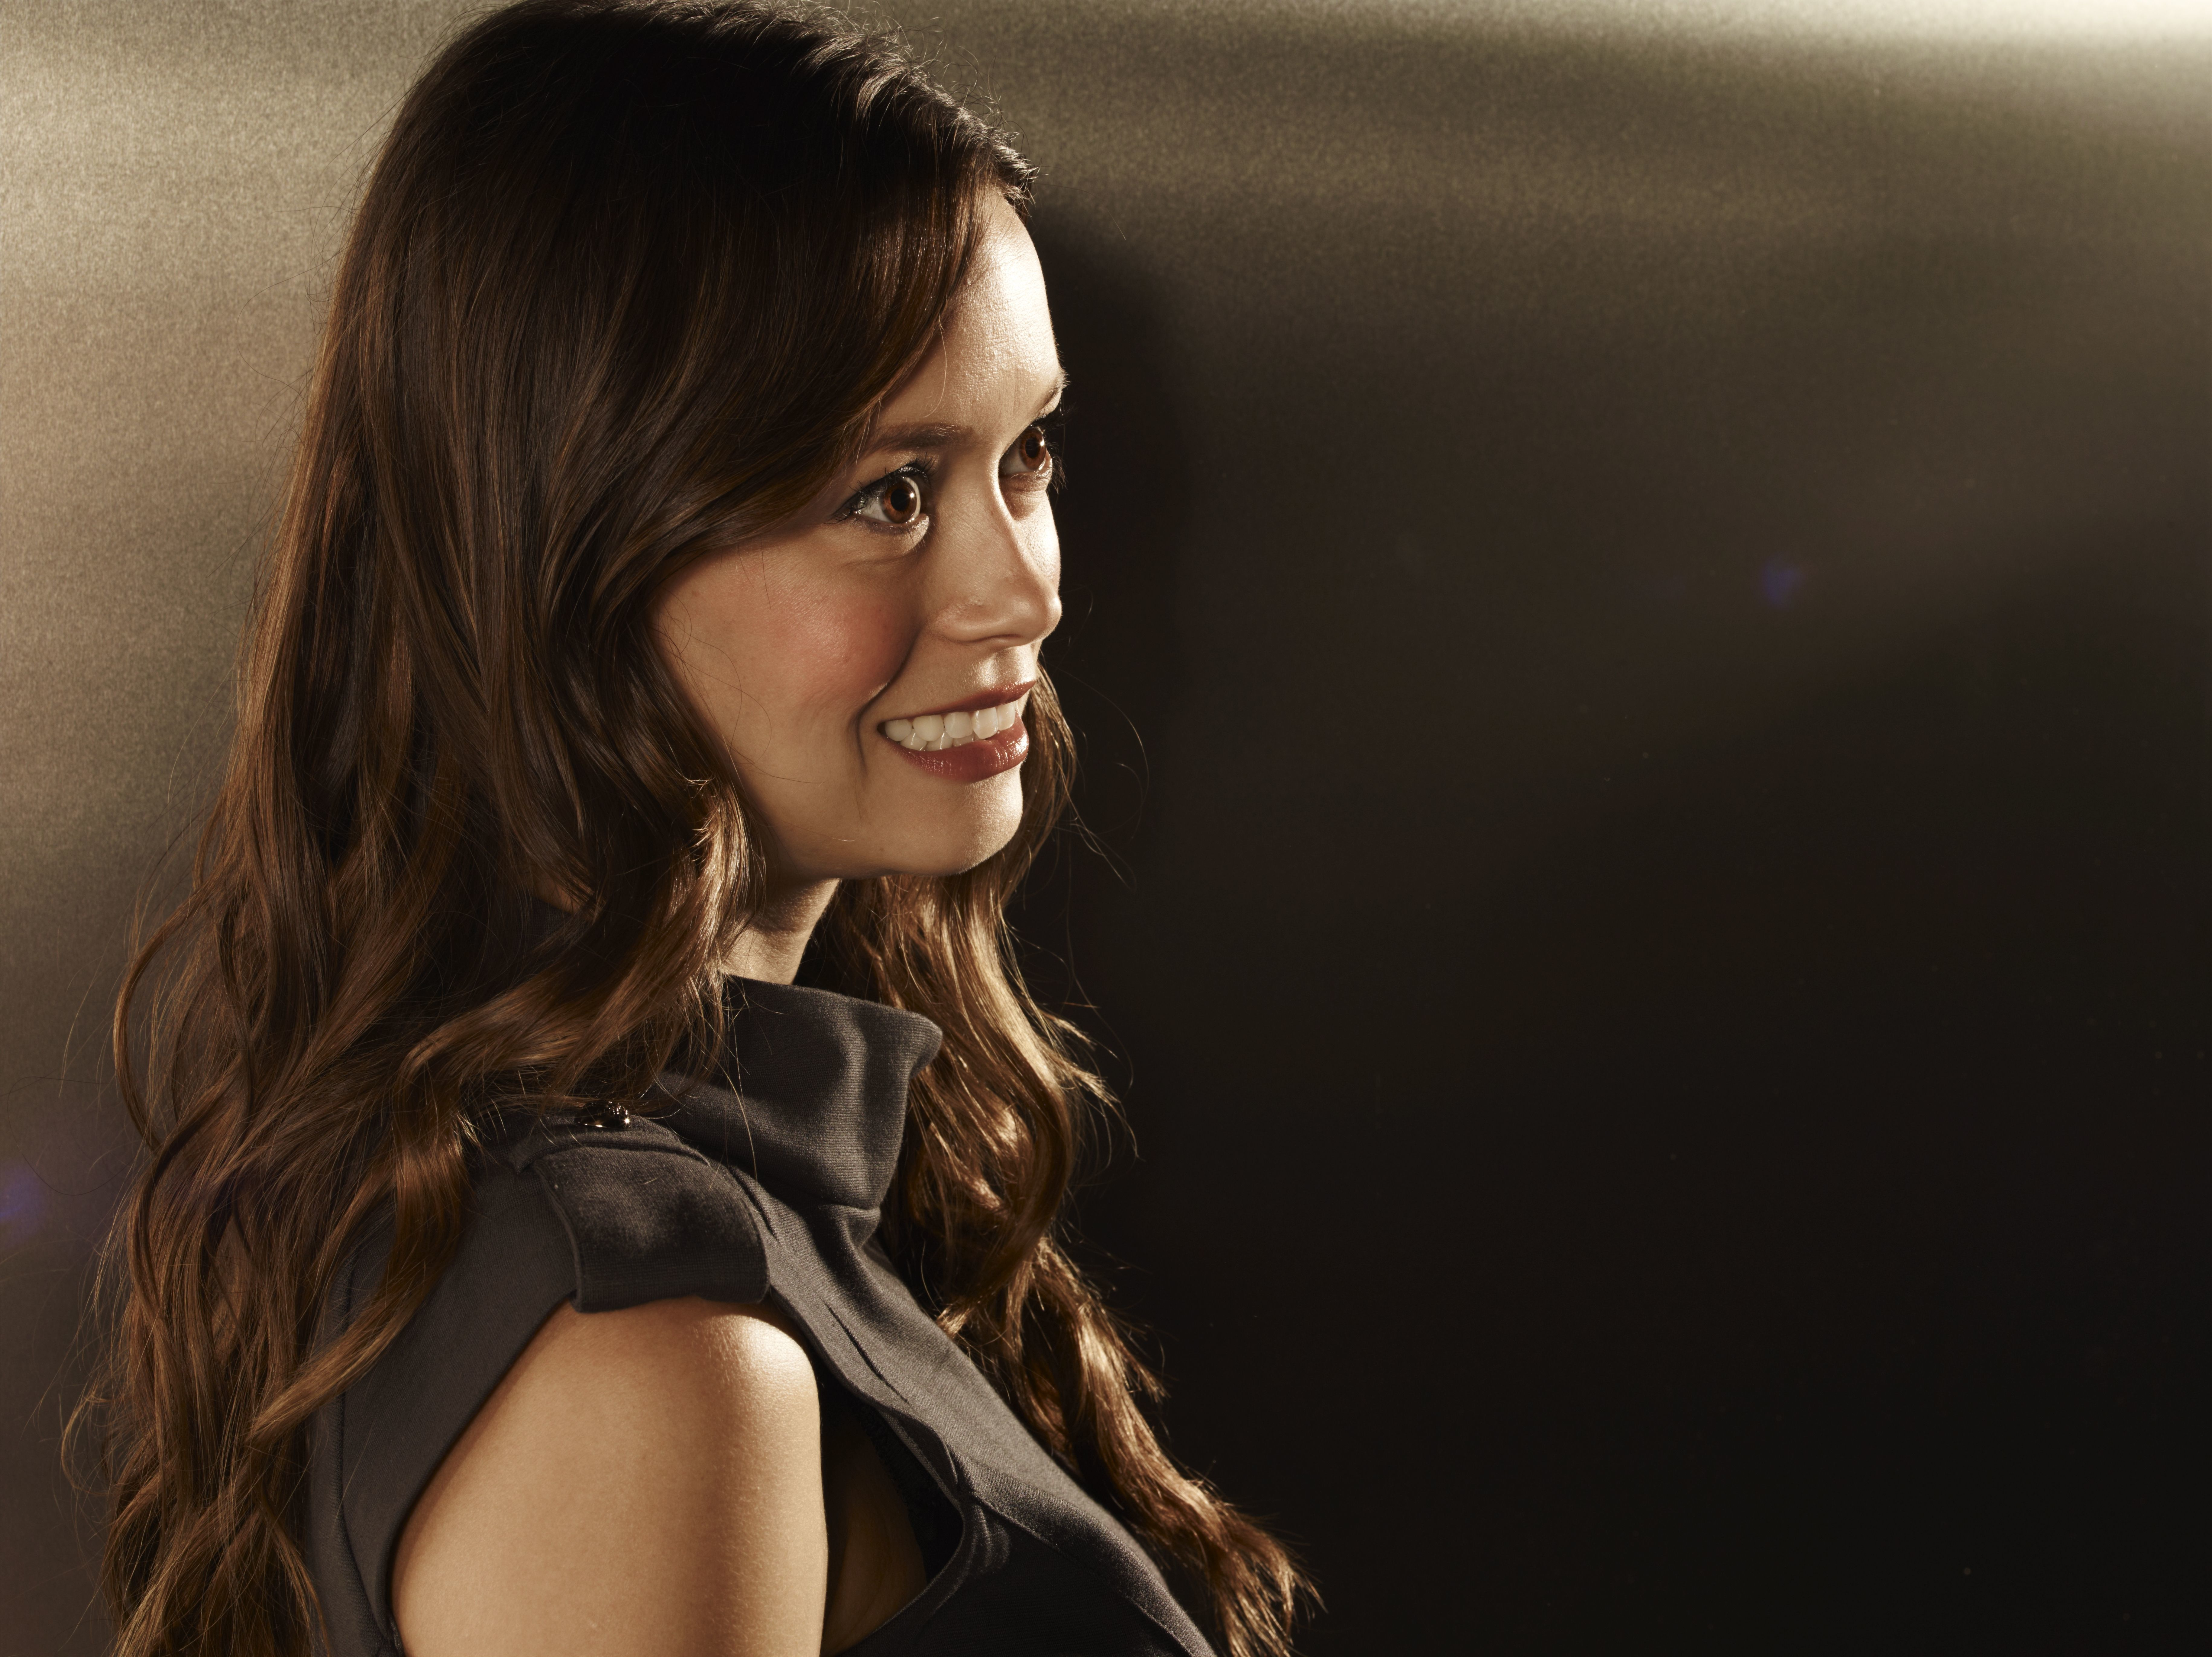 summer glau The Cape HD Wallpaper